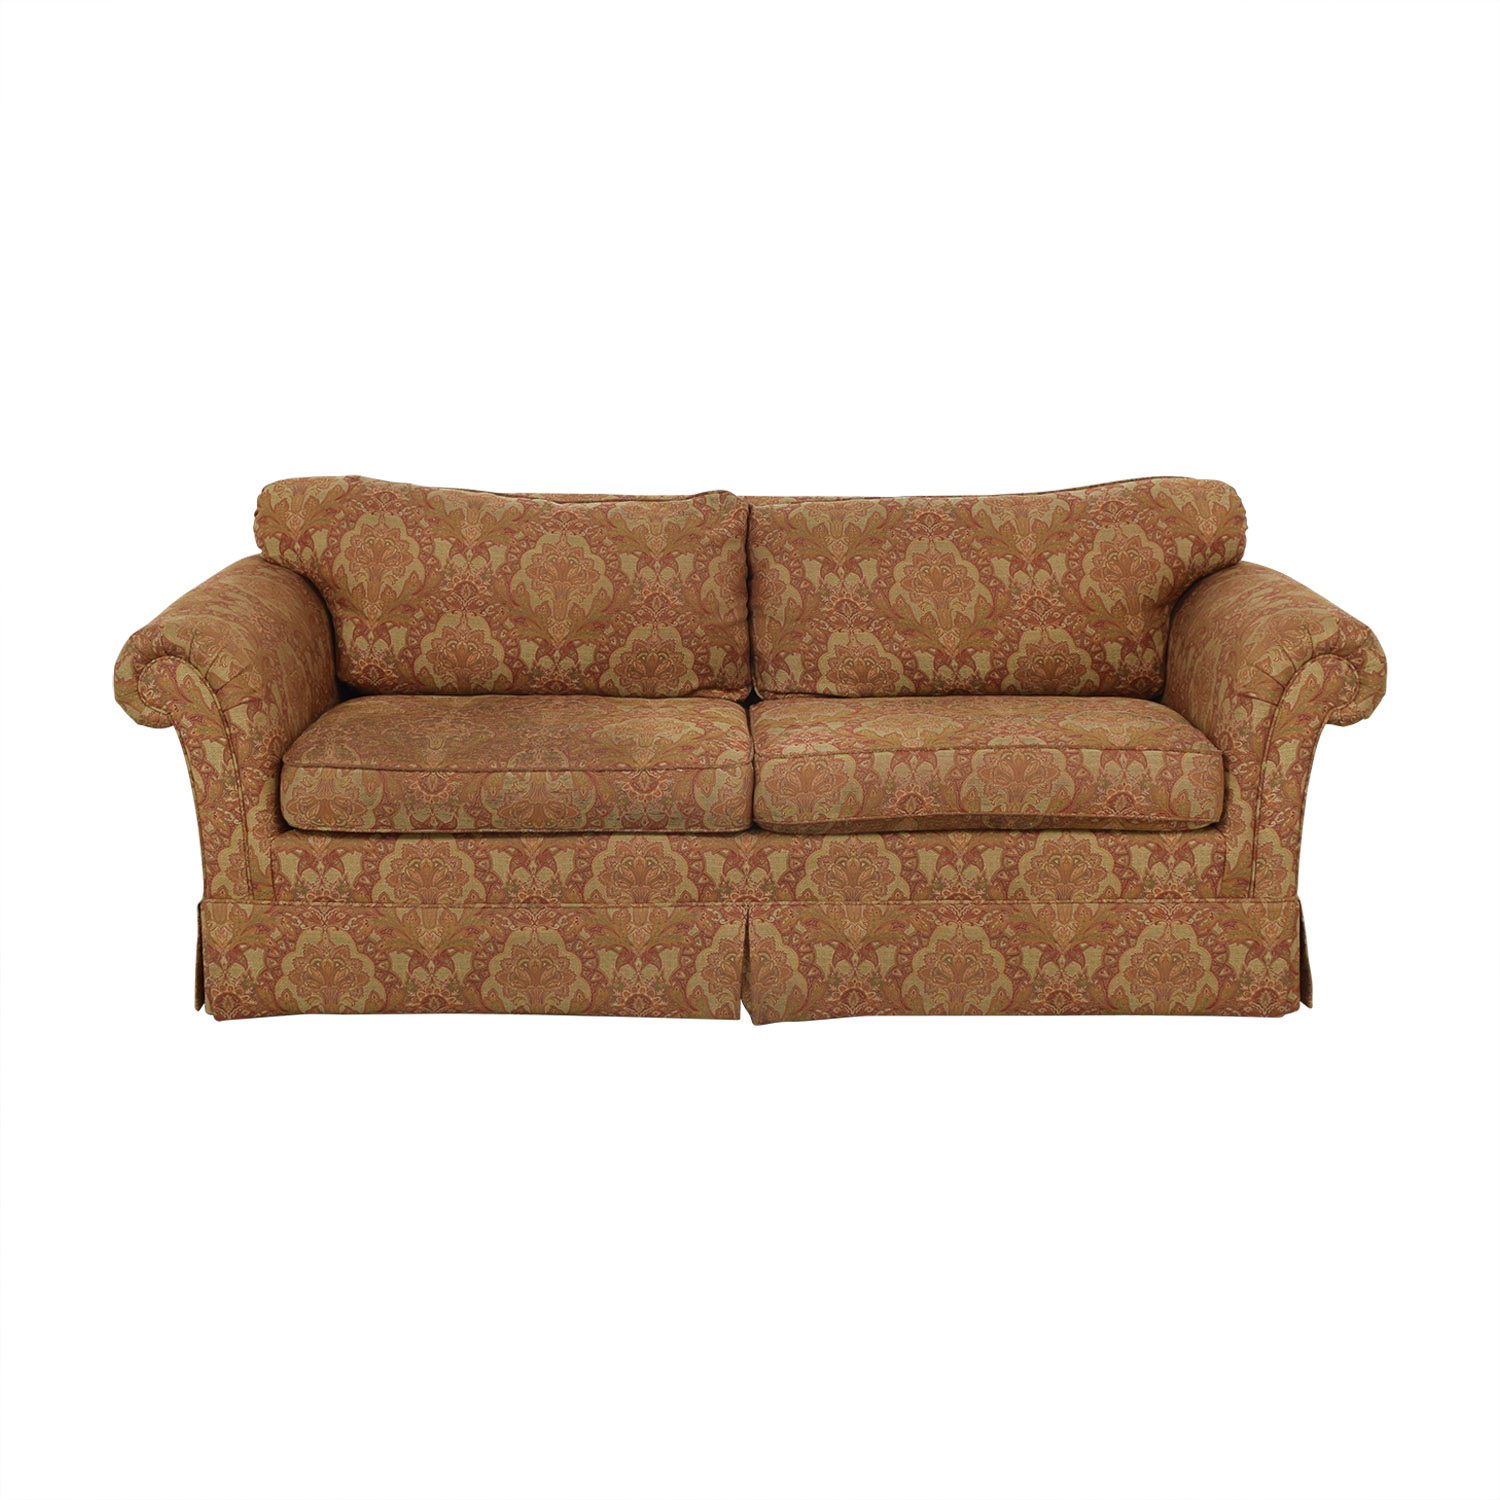 Stickley Furniture Stickley Furniture Two Cushion Sofa for sale